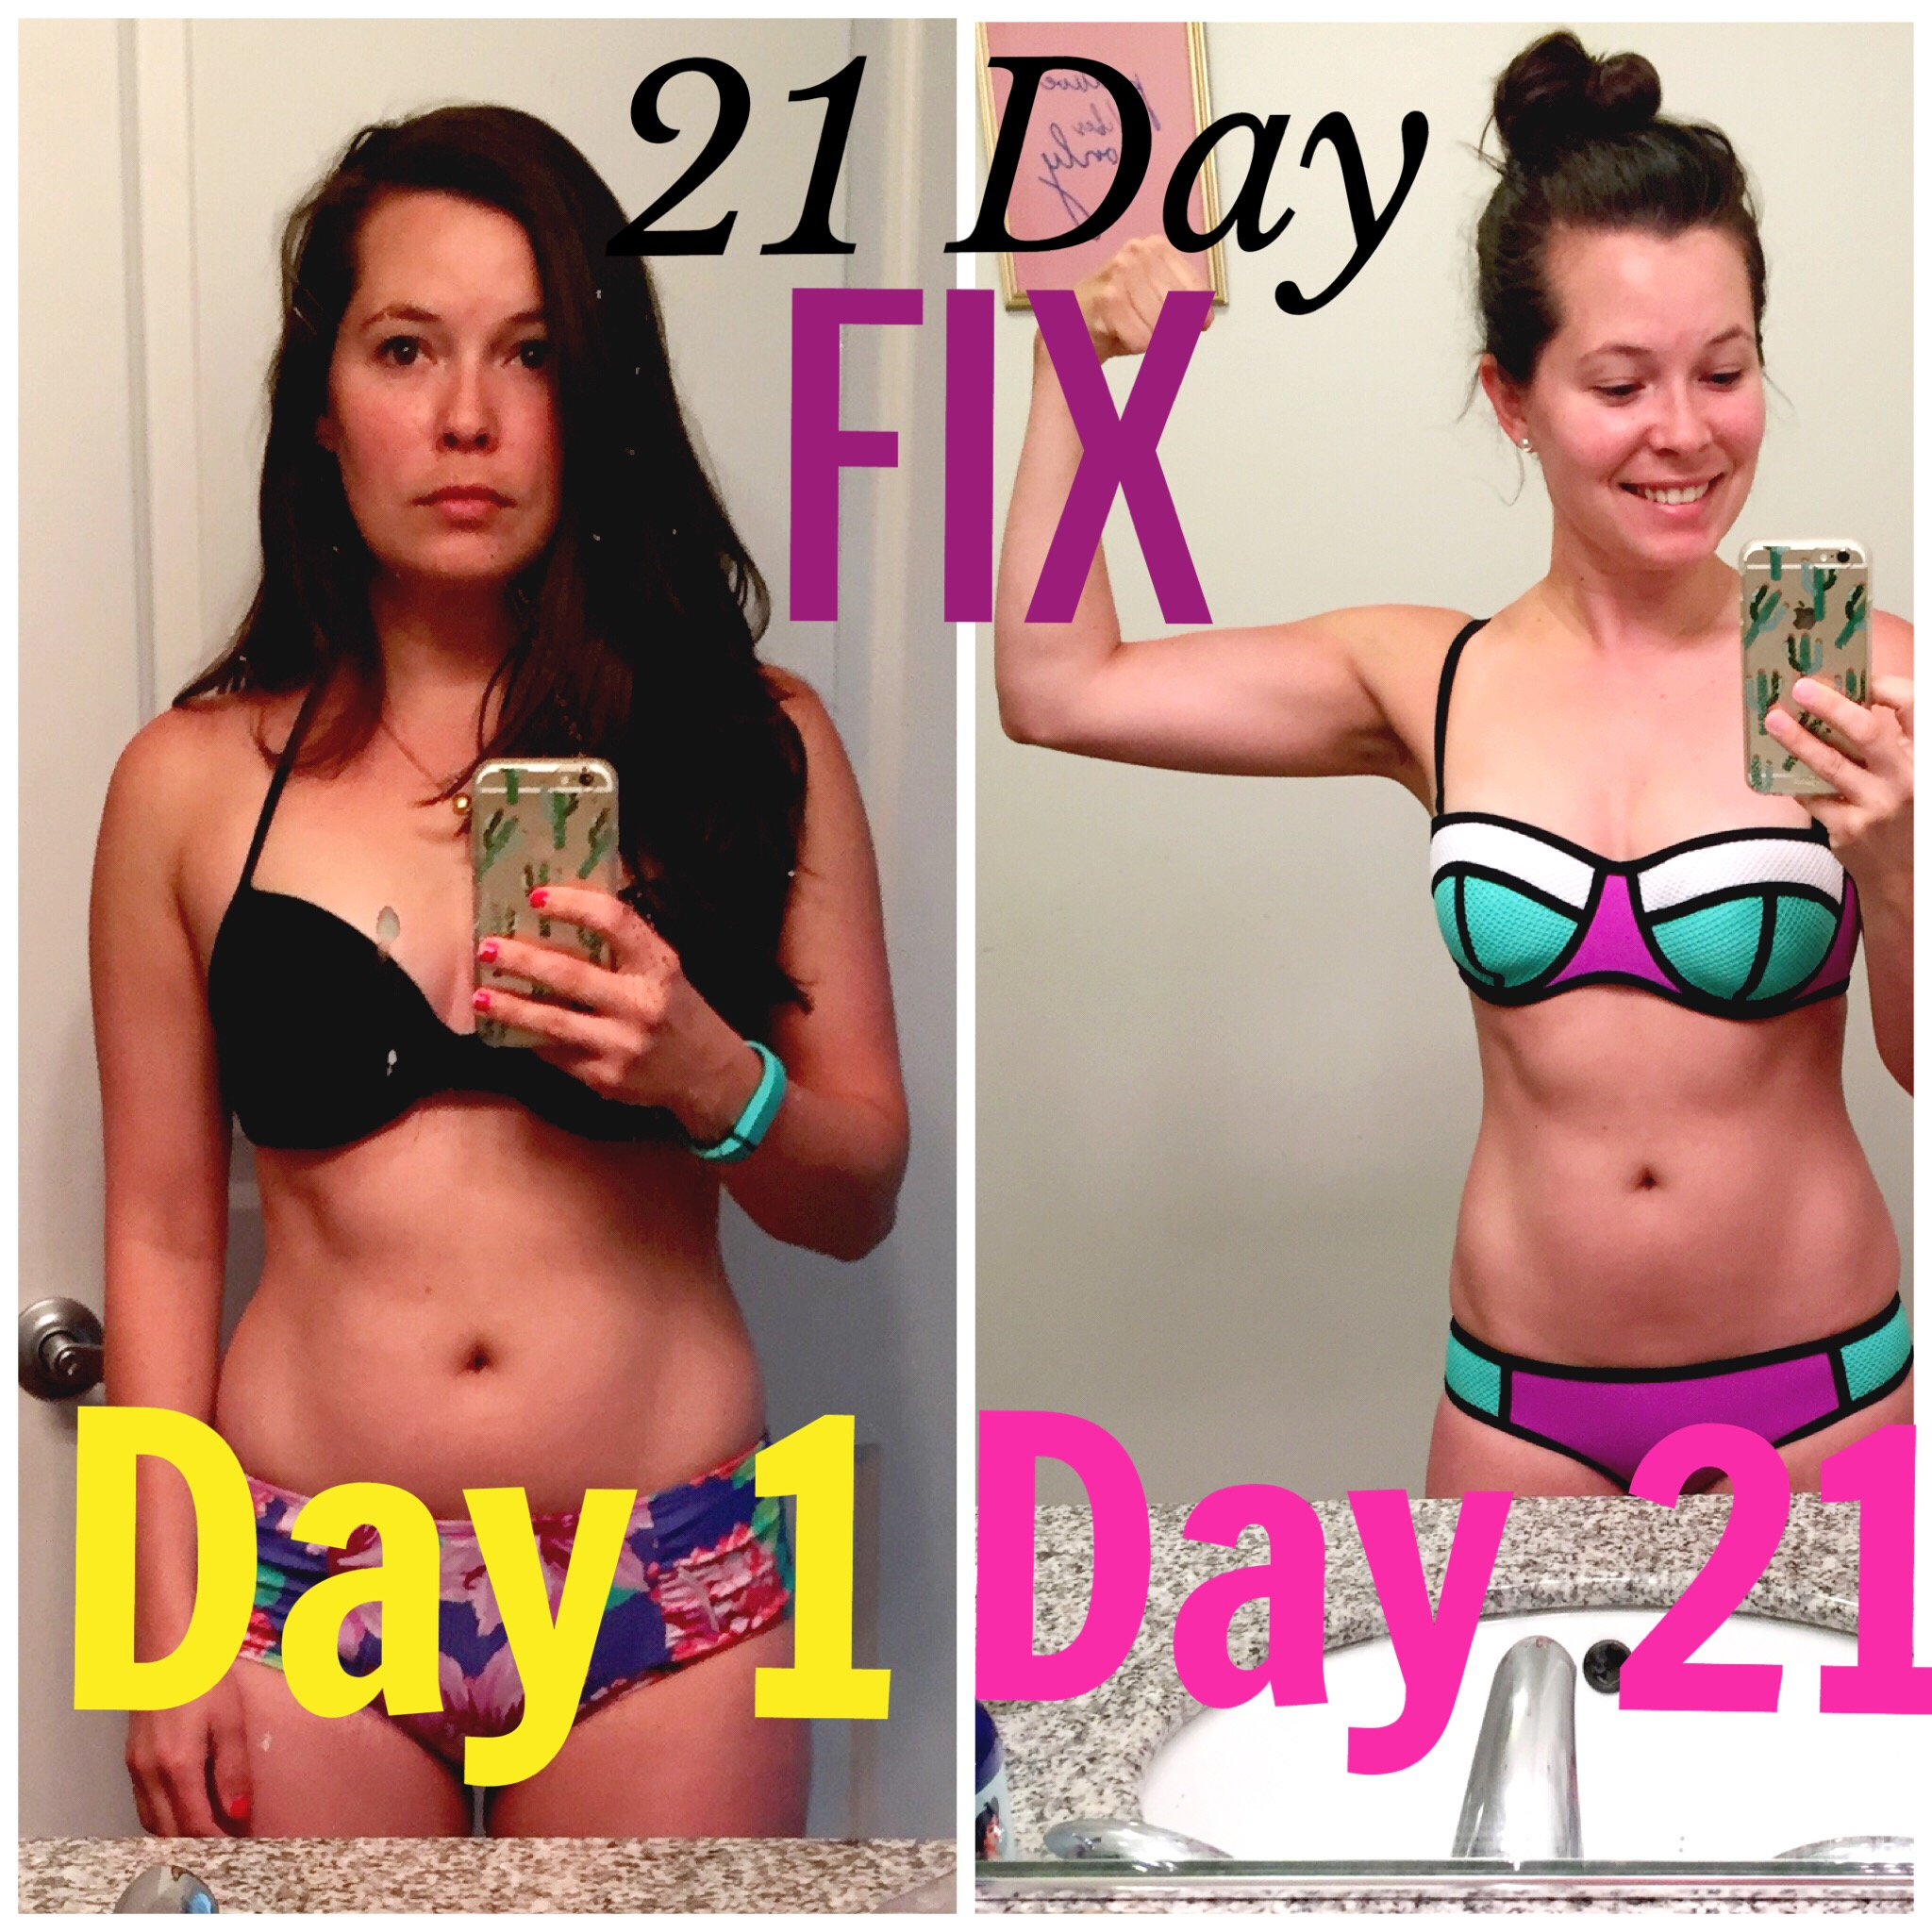 kat 21 day fix before and after